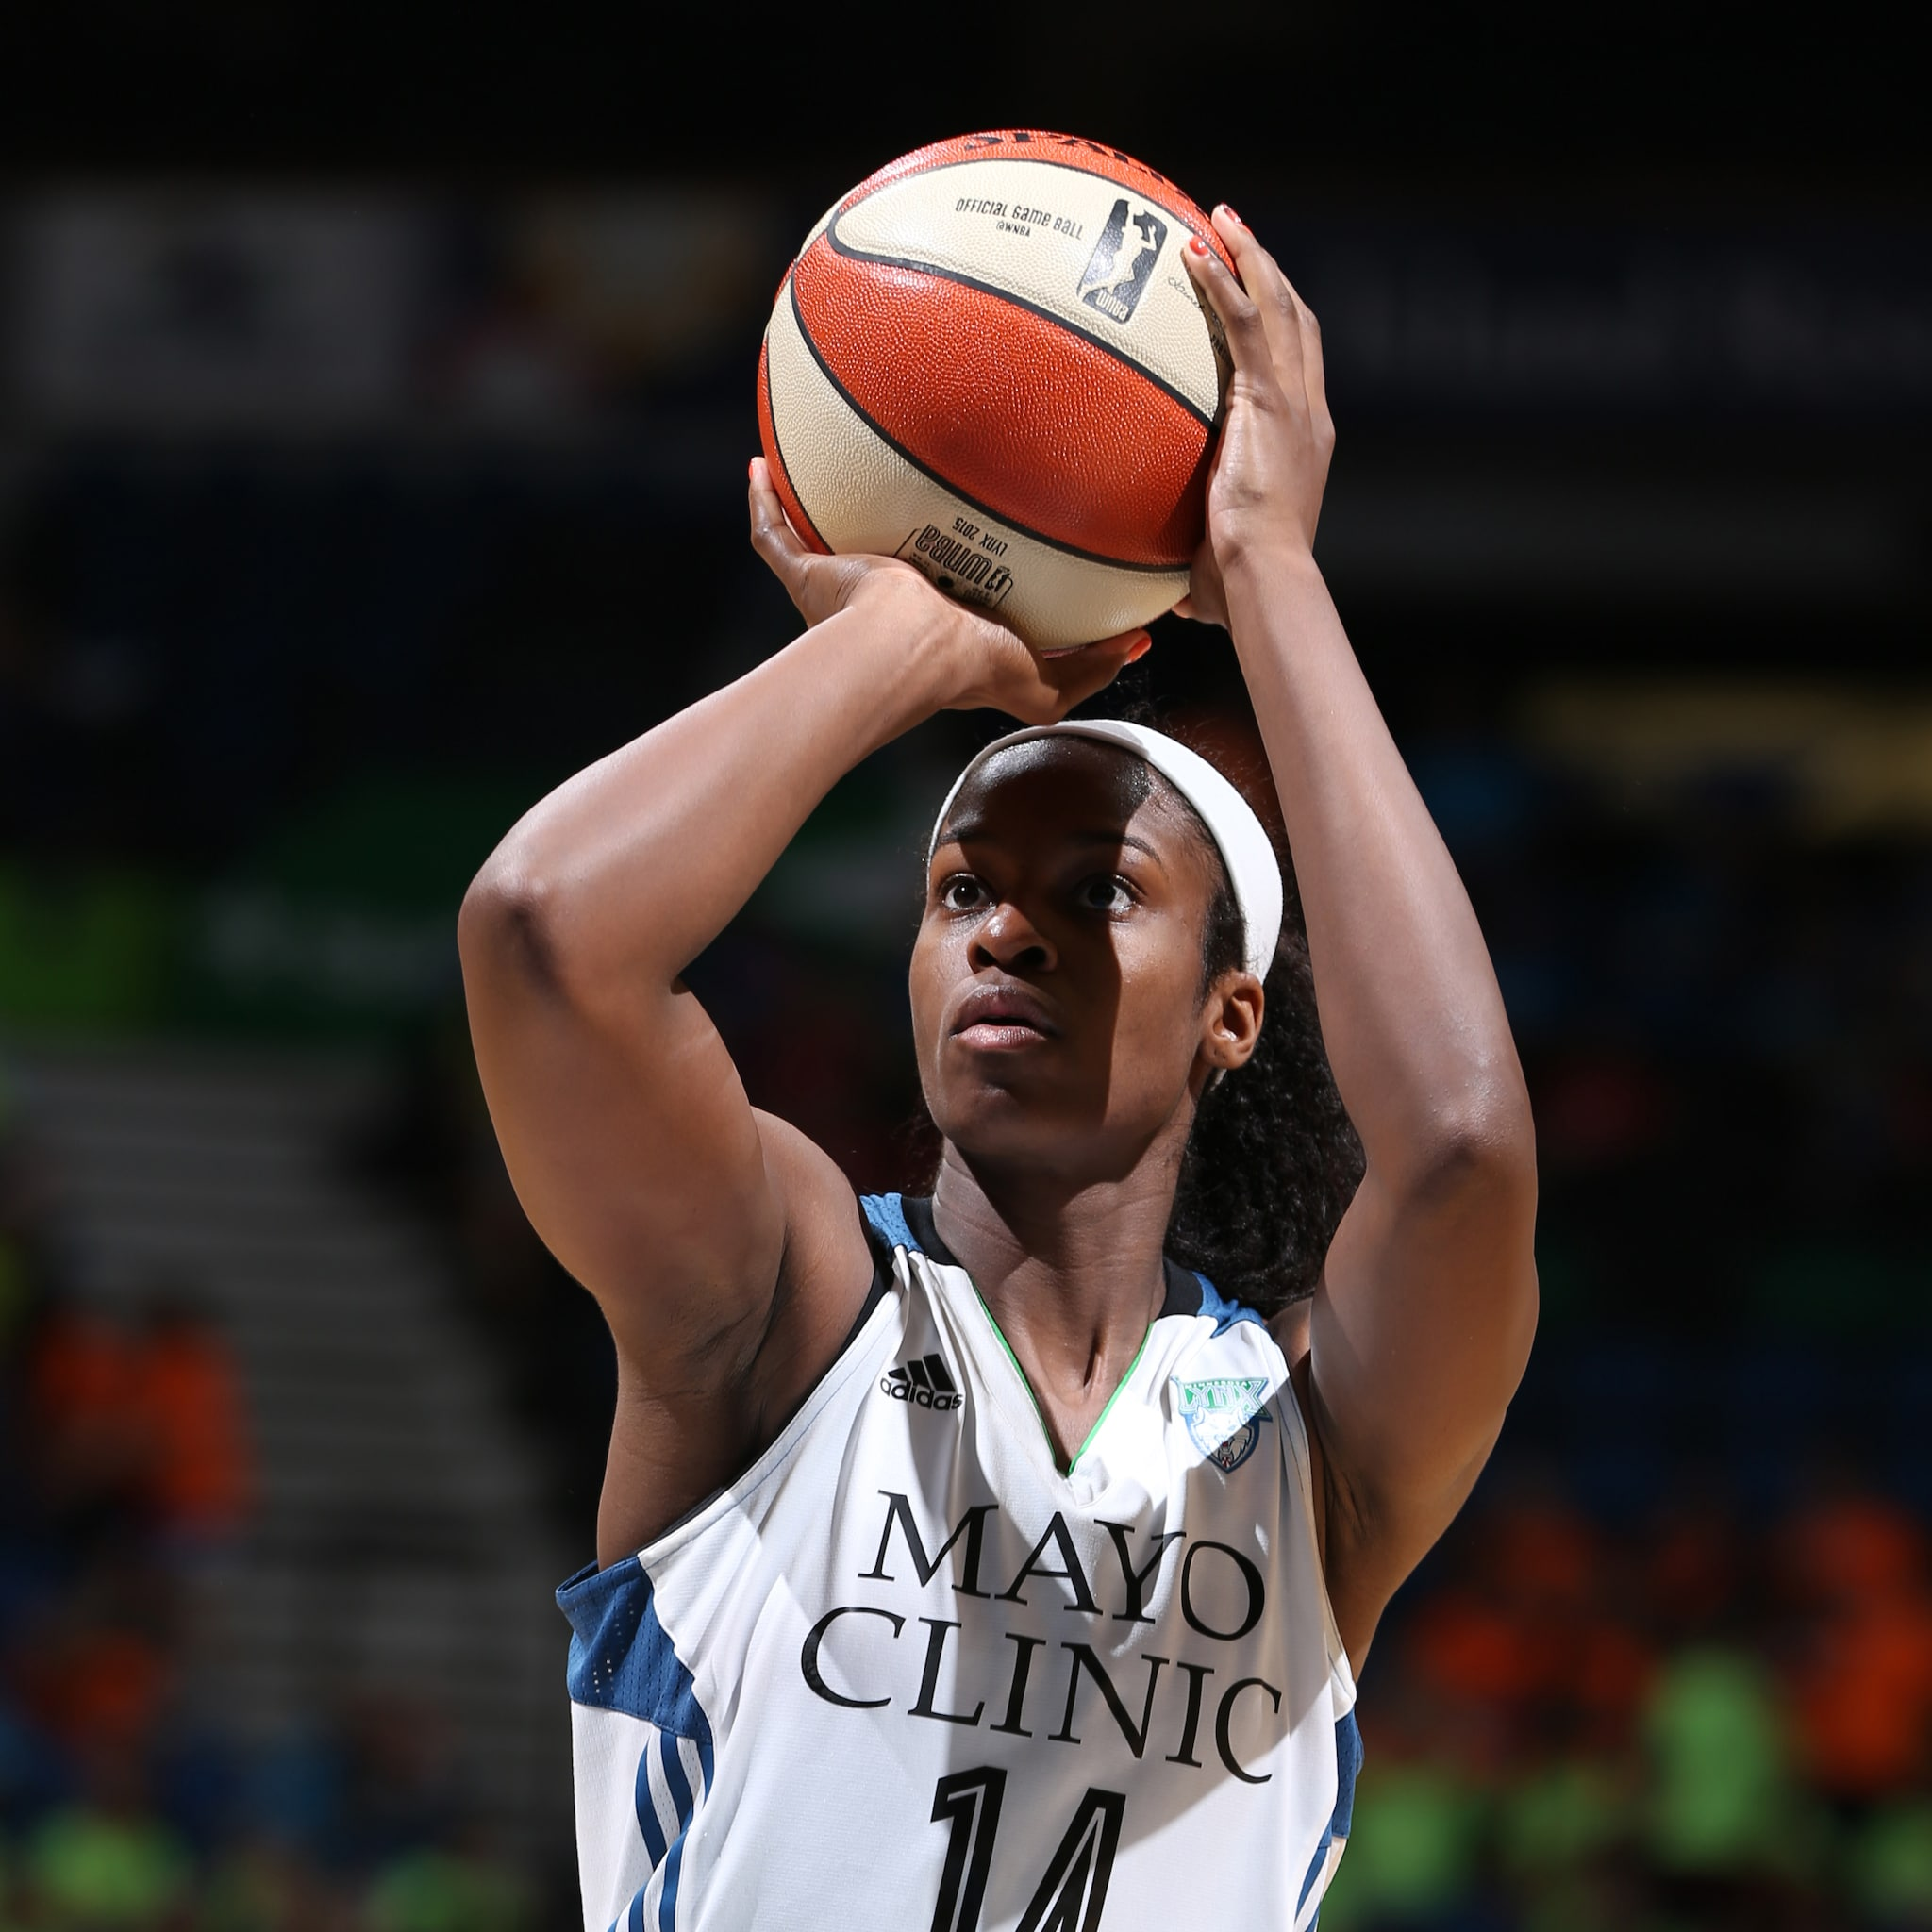 MINNEAPOLIS, MN - JULY 22: Devereaux Peters #14 of the Minnesota Lynx attempts a free throw against the Connecticut Sun on July 22, 2015 at Target Center in Minneapolis, Minnesota. NOTE TO USER: User expressly acknowledges and agrees that, by downloading and or using this Photograph, user is consenting to the terms and conditions of the Getty Images License Agreement. Mandatory Copyright Notice: Copyright 2015 NBAE (Photo by David Sherman/NBAE via Getty Images)